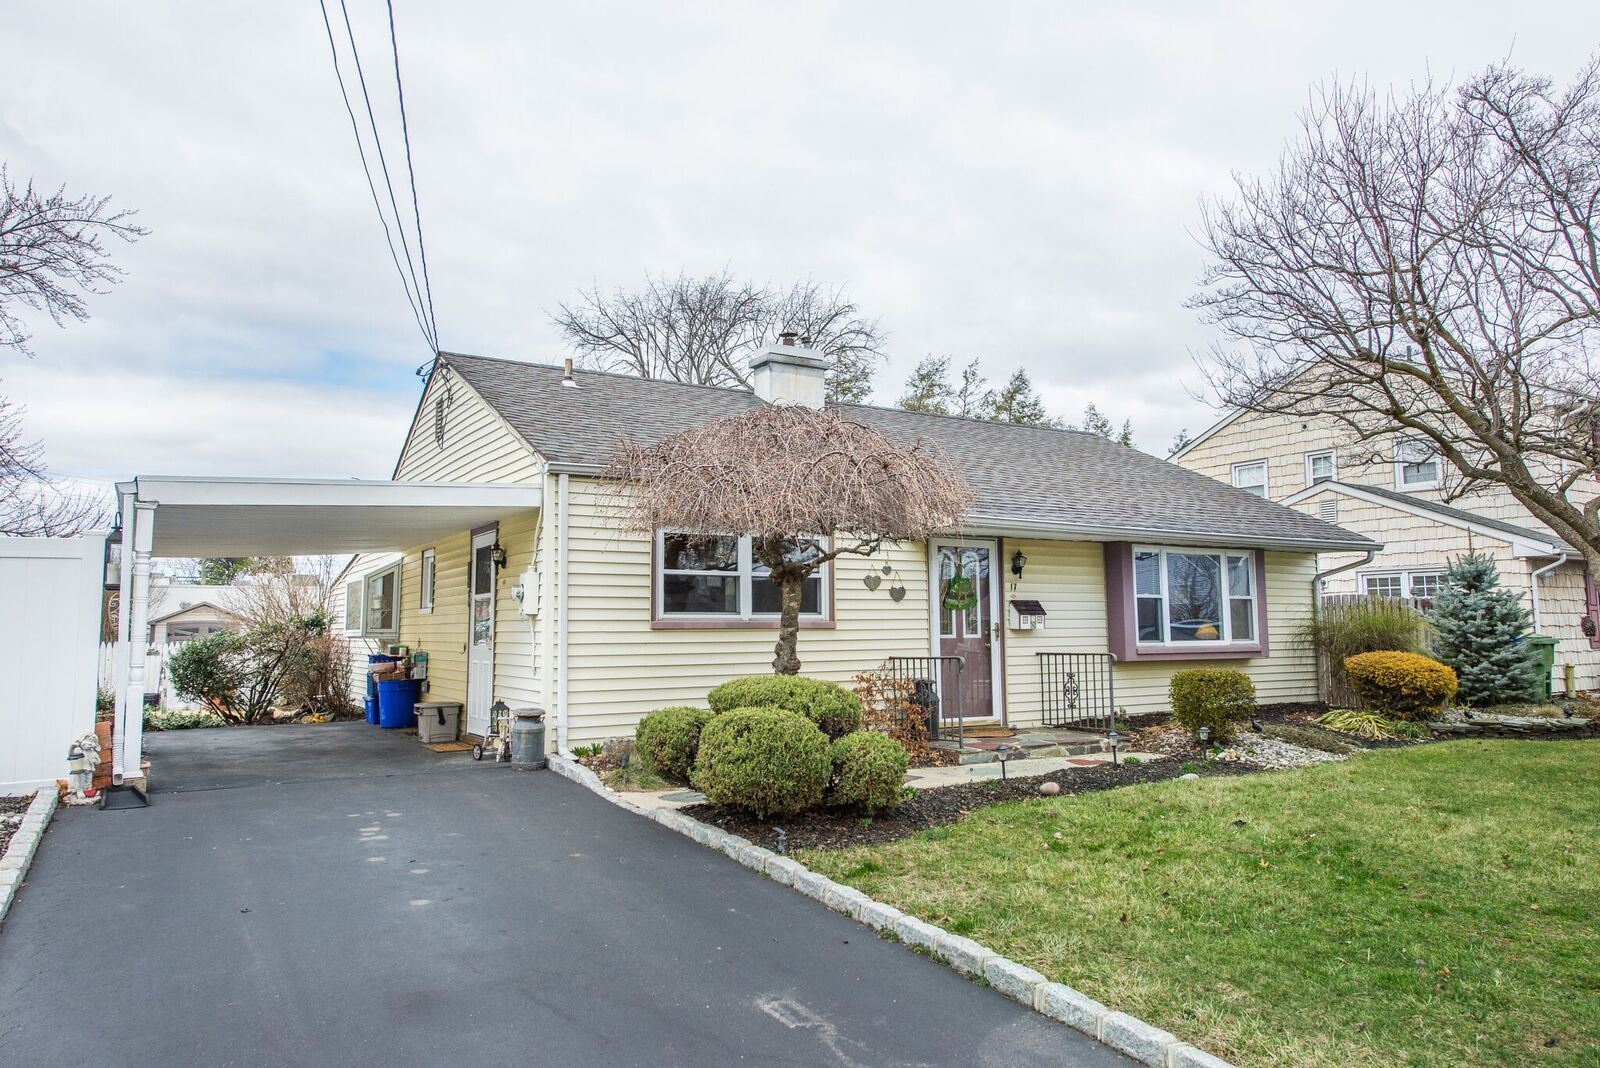 Edison, NJ Maintenance Free Ranch Features Updated Kitchen With Maple  Cabinets, Gas Range And Microwave/convection Oven. The Home Has Newer  Windows, ...